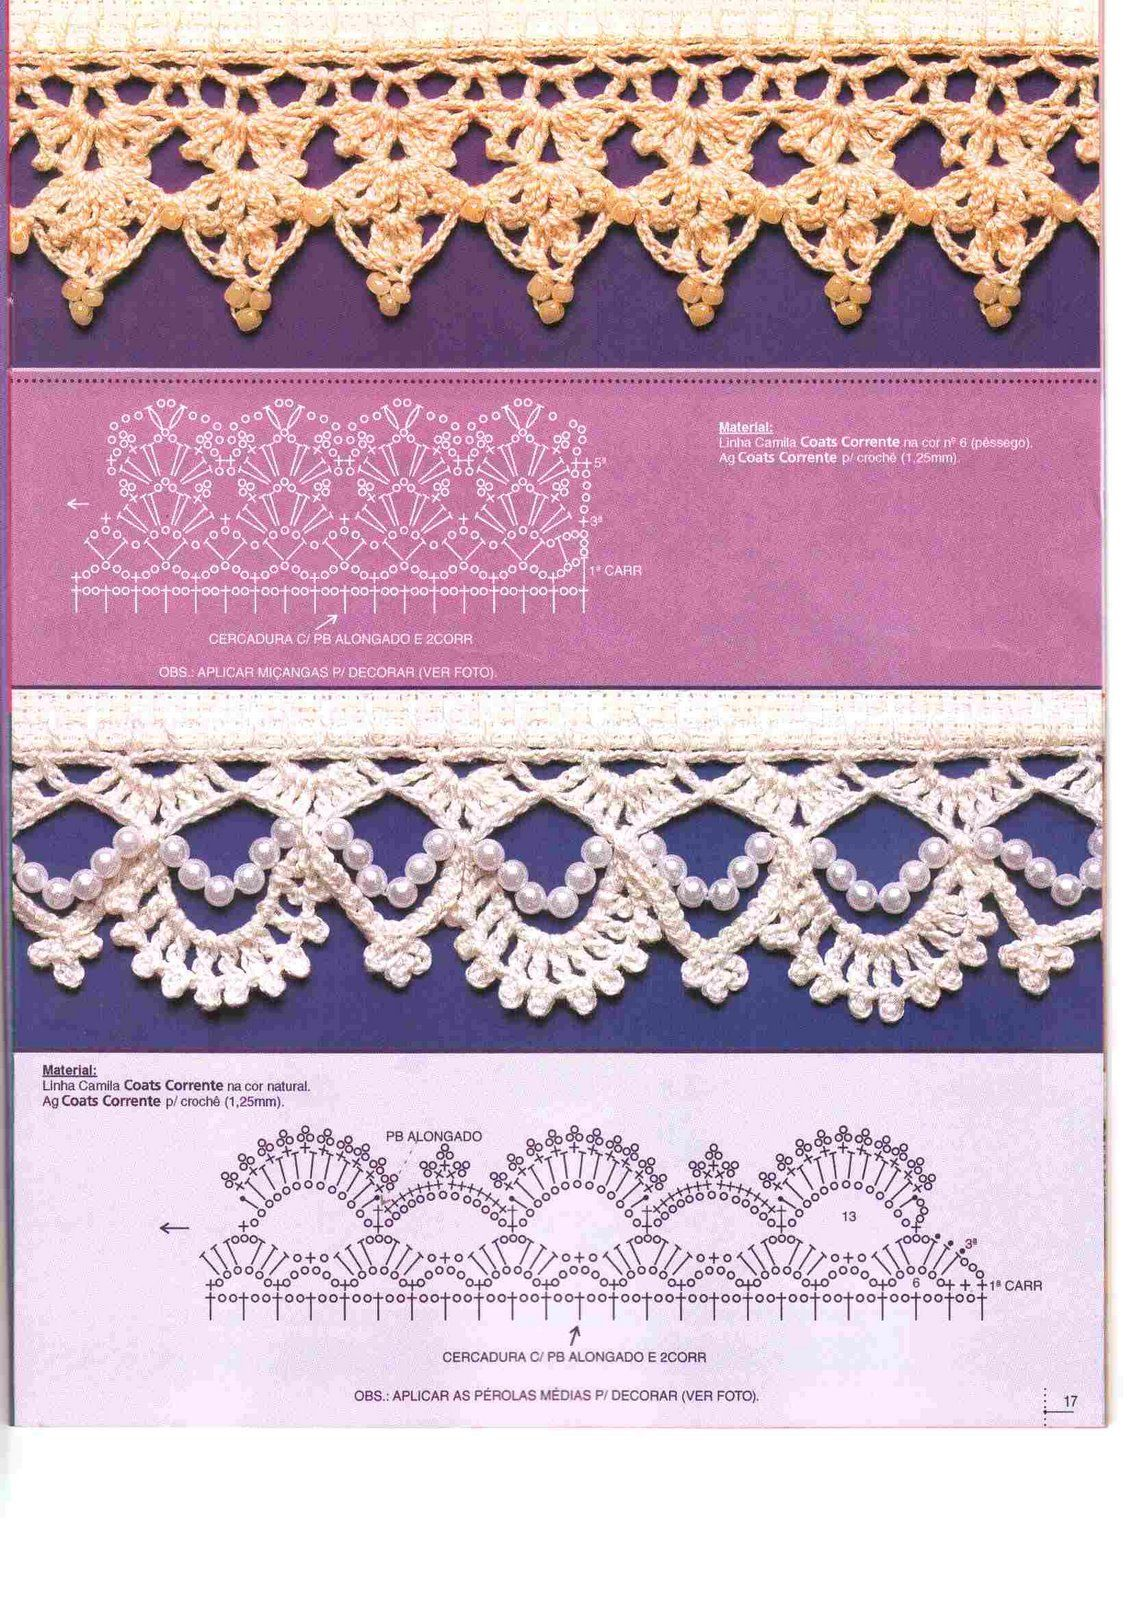 Pin By Suzie Berger On Crocheted Trim Crochet Crochet Edging